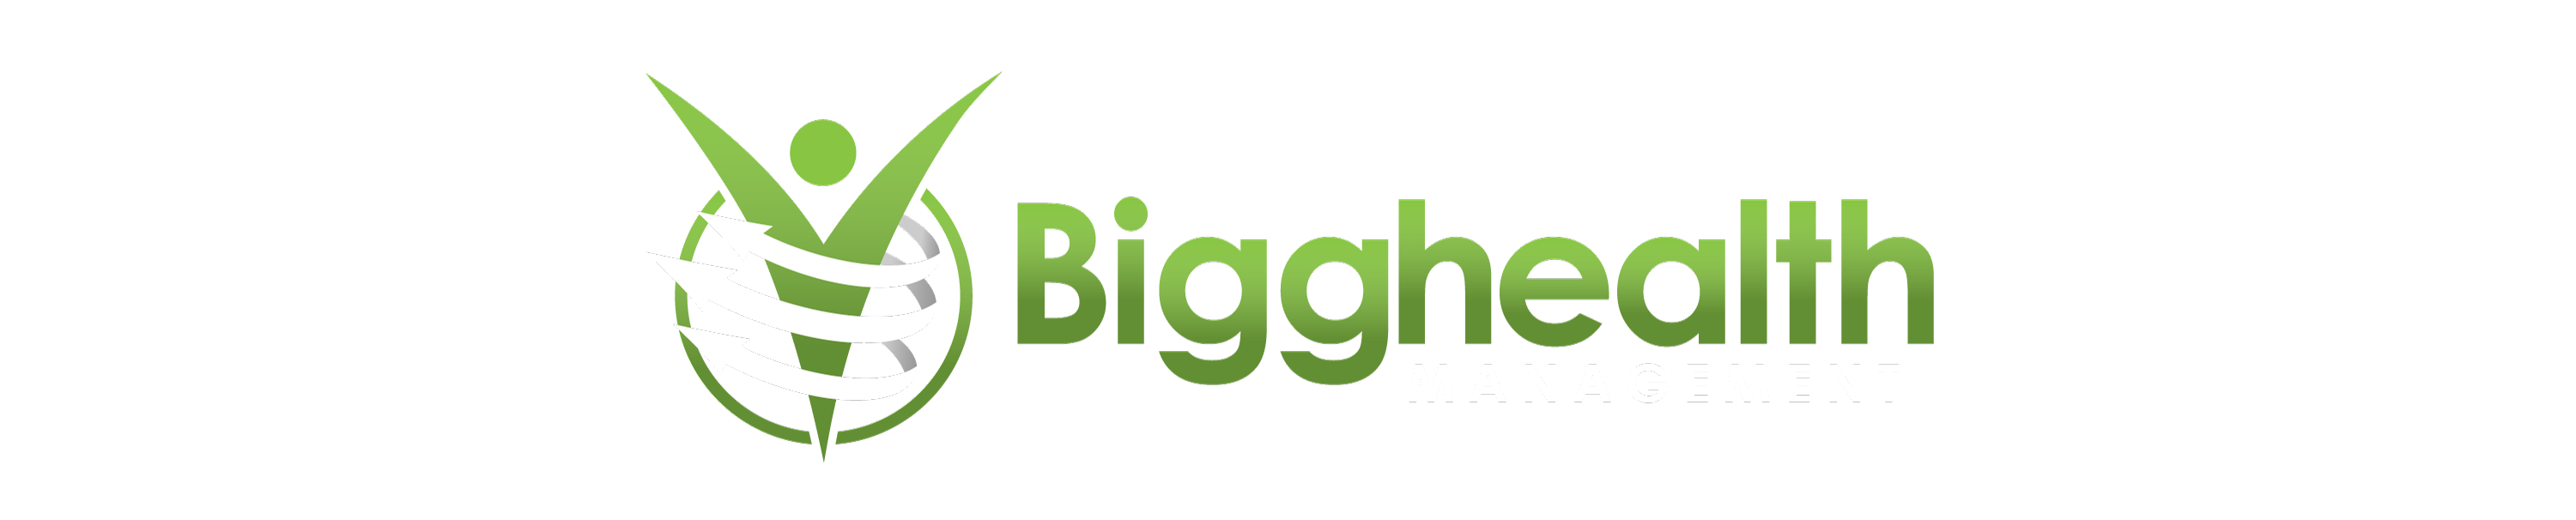 Bigghealth Management